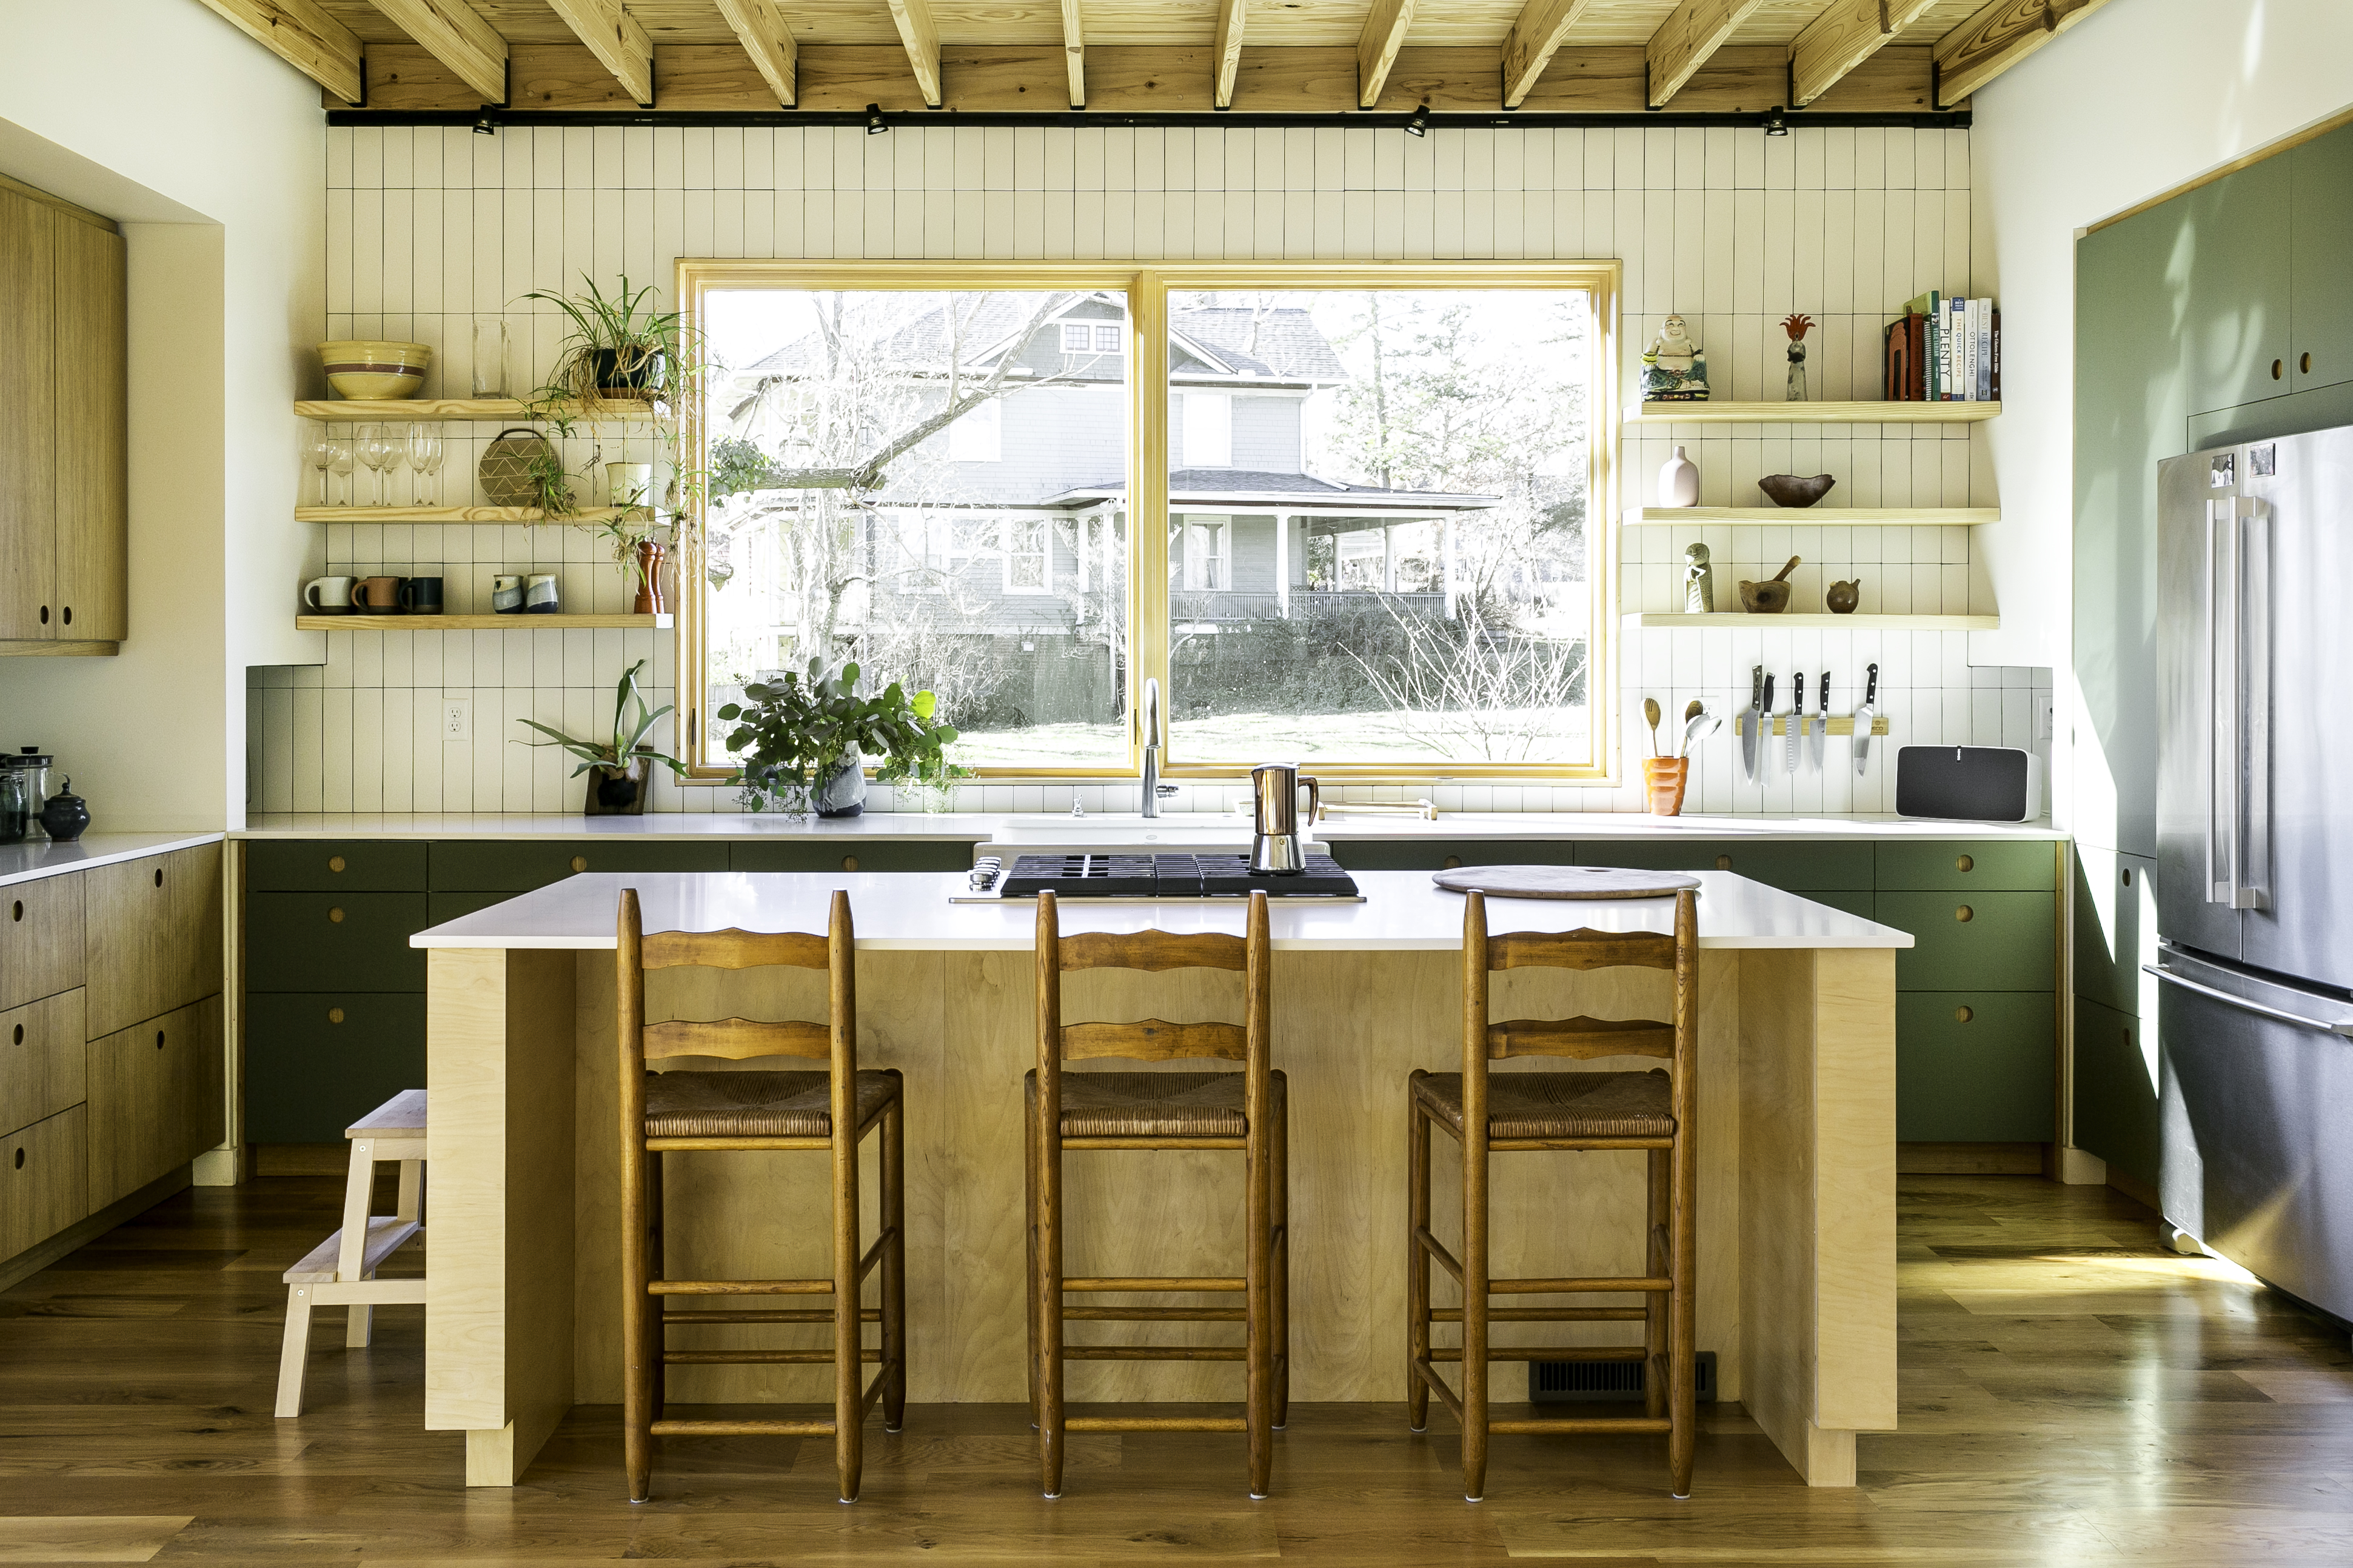 The kitchen, with a wall of tile backsplash in cream subway tile, open wooden shelving on either side of a large window above the sink, and white countertop, green cabinets. An island in the foreground has three wooden barstool chairs in front.